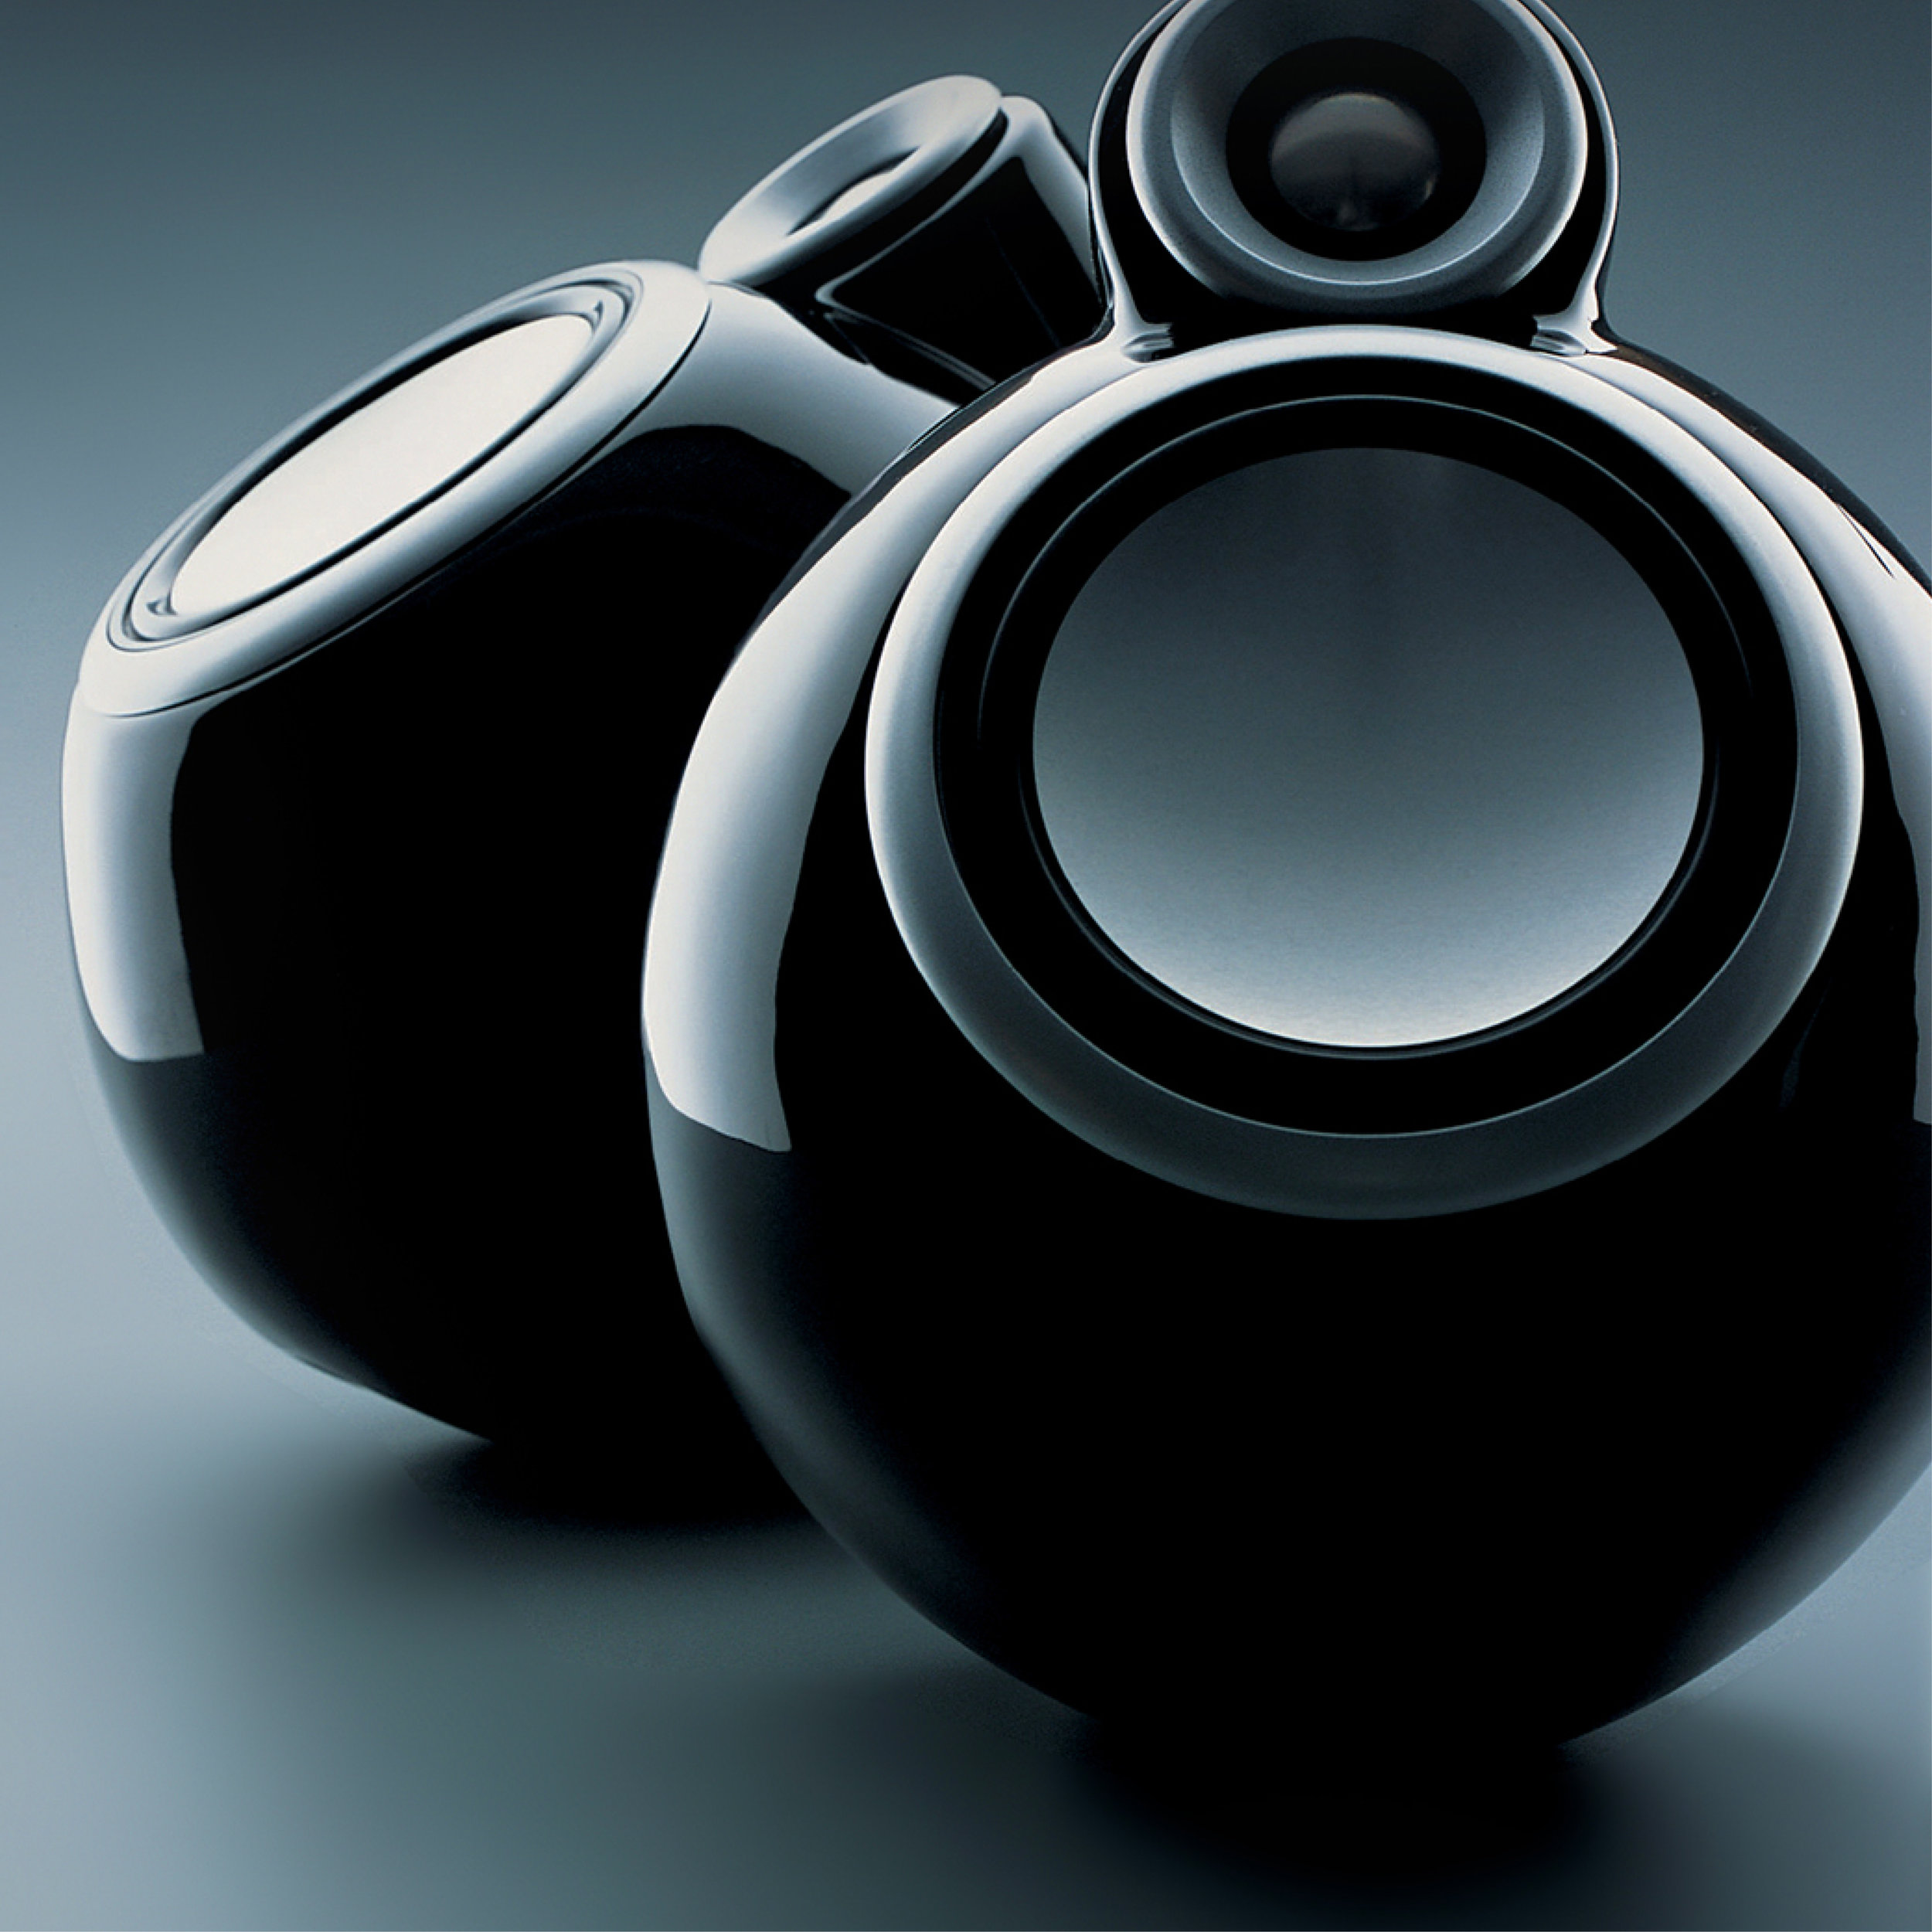 Orb 1 - Orbital sound System2004 - Piano black & silver / Ceramic